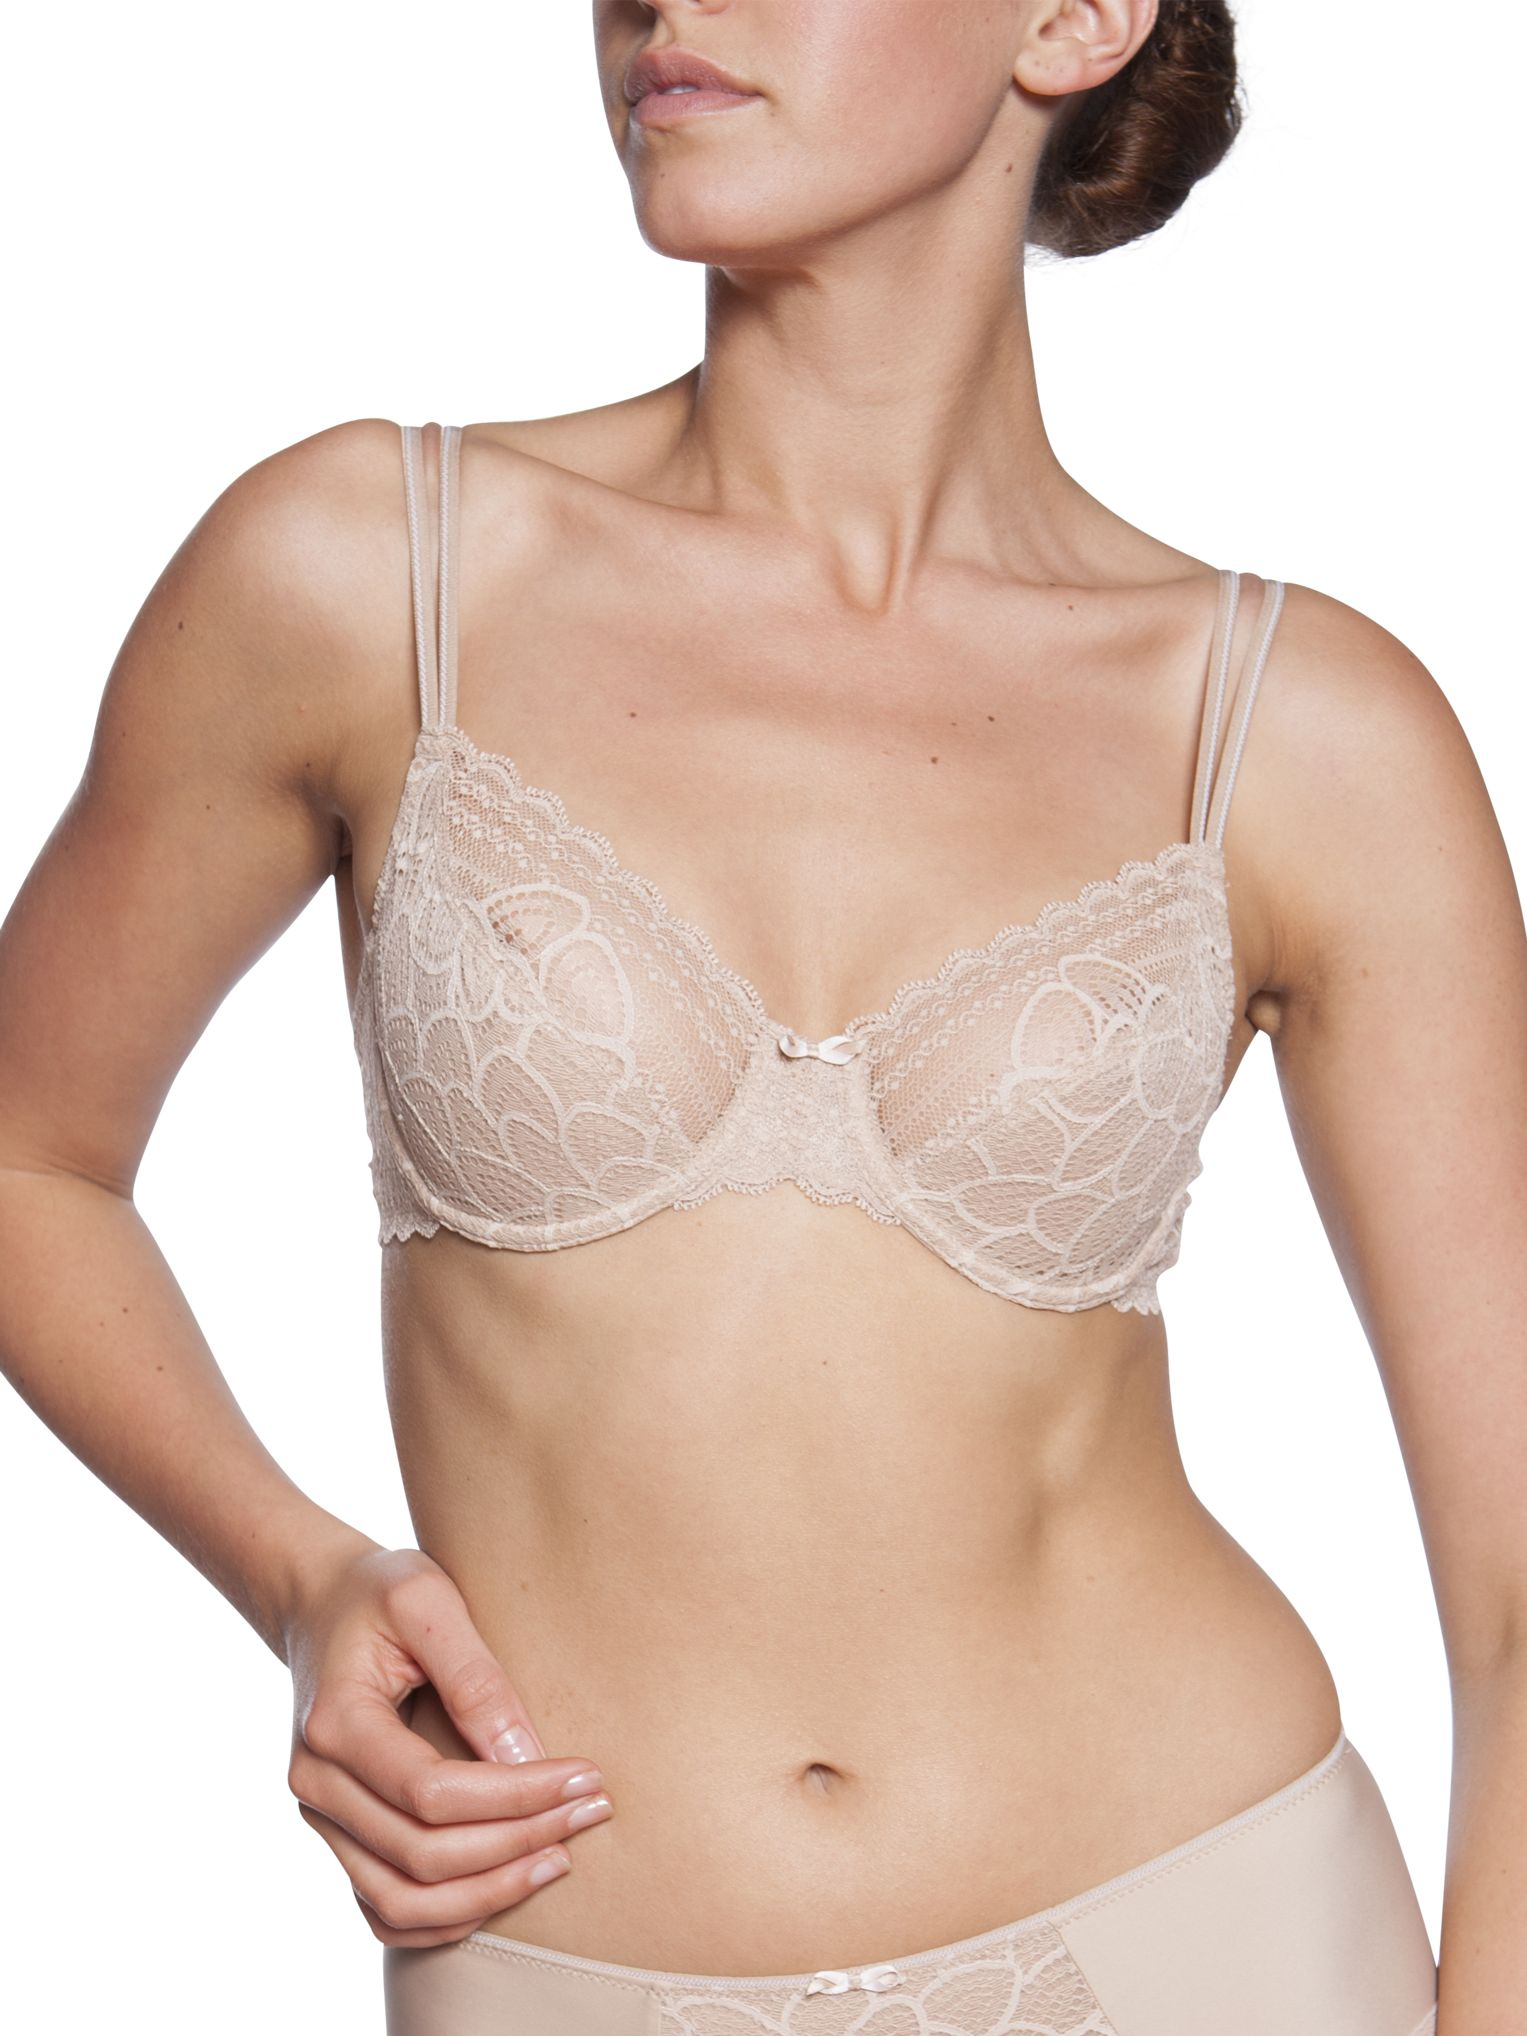 Chantelle Merci Underwired Bra, Nude